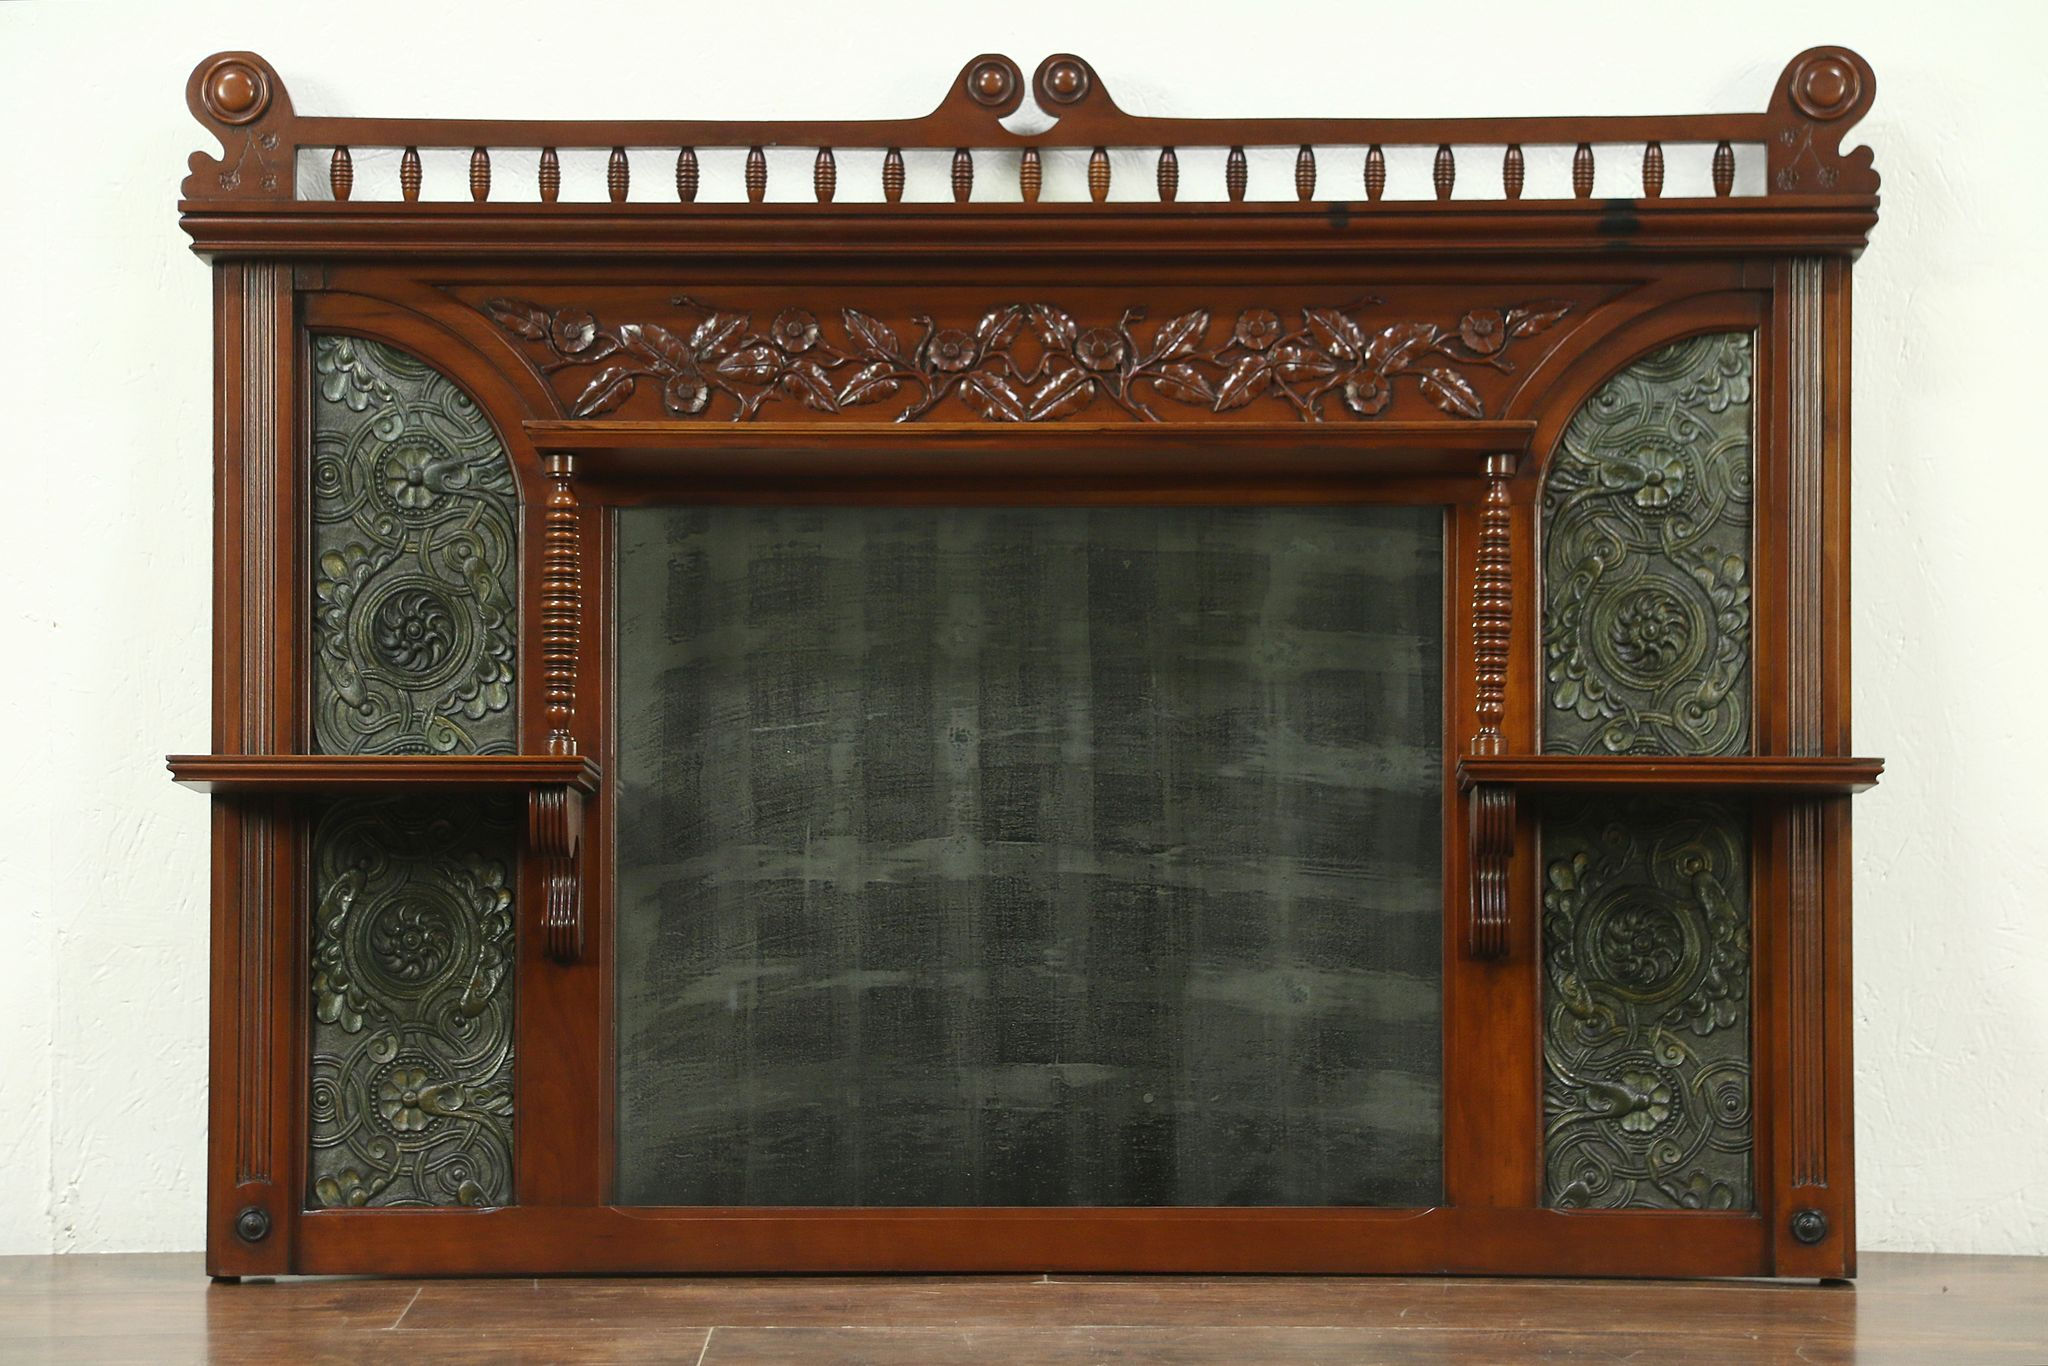 Sold Victorian Antique Cherry Leather Architectural Salvage Mantel Mirror 28808 Harp Gallery Antiques Furniture